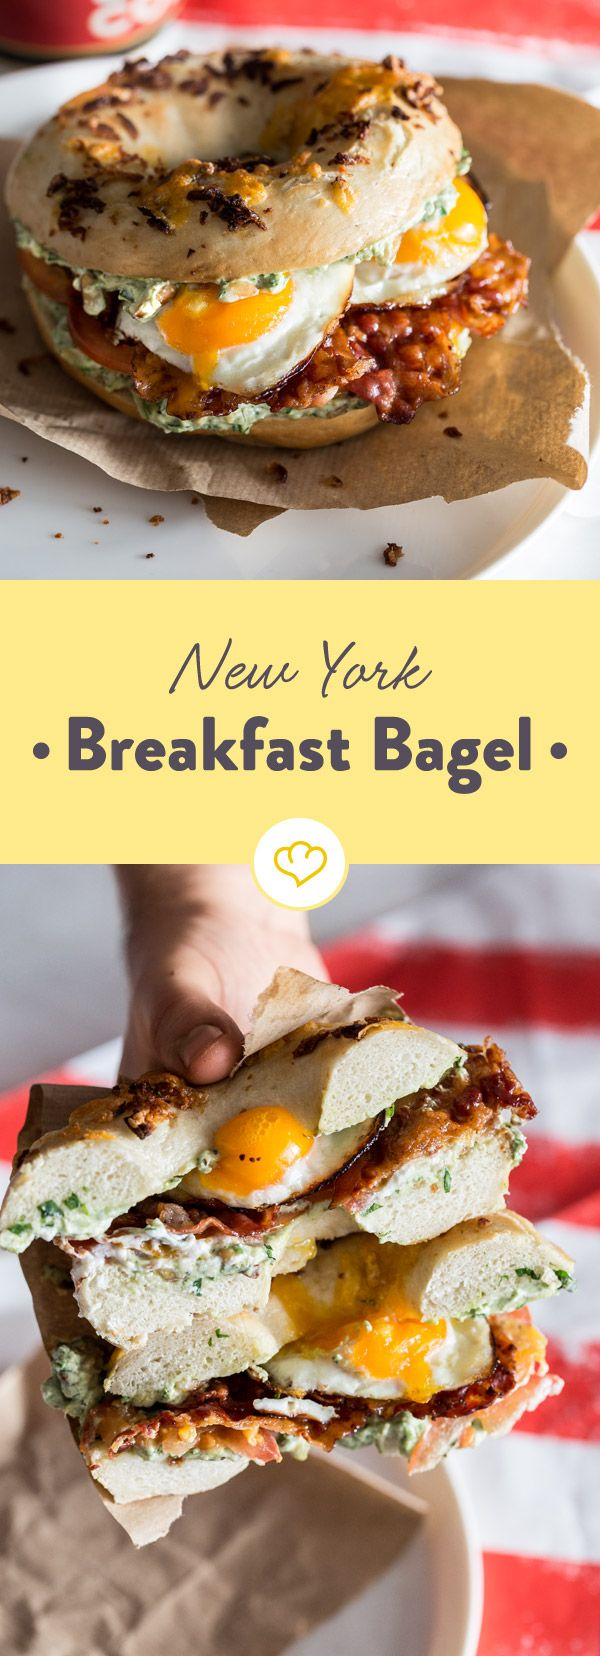 New York Breakfast Bagel